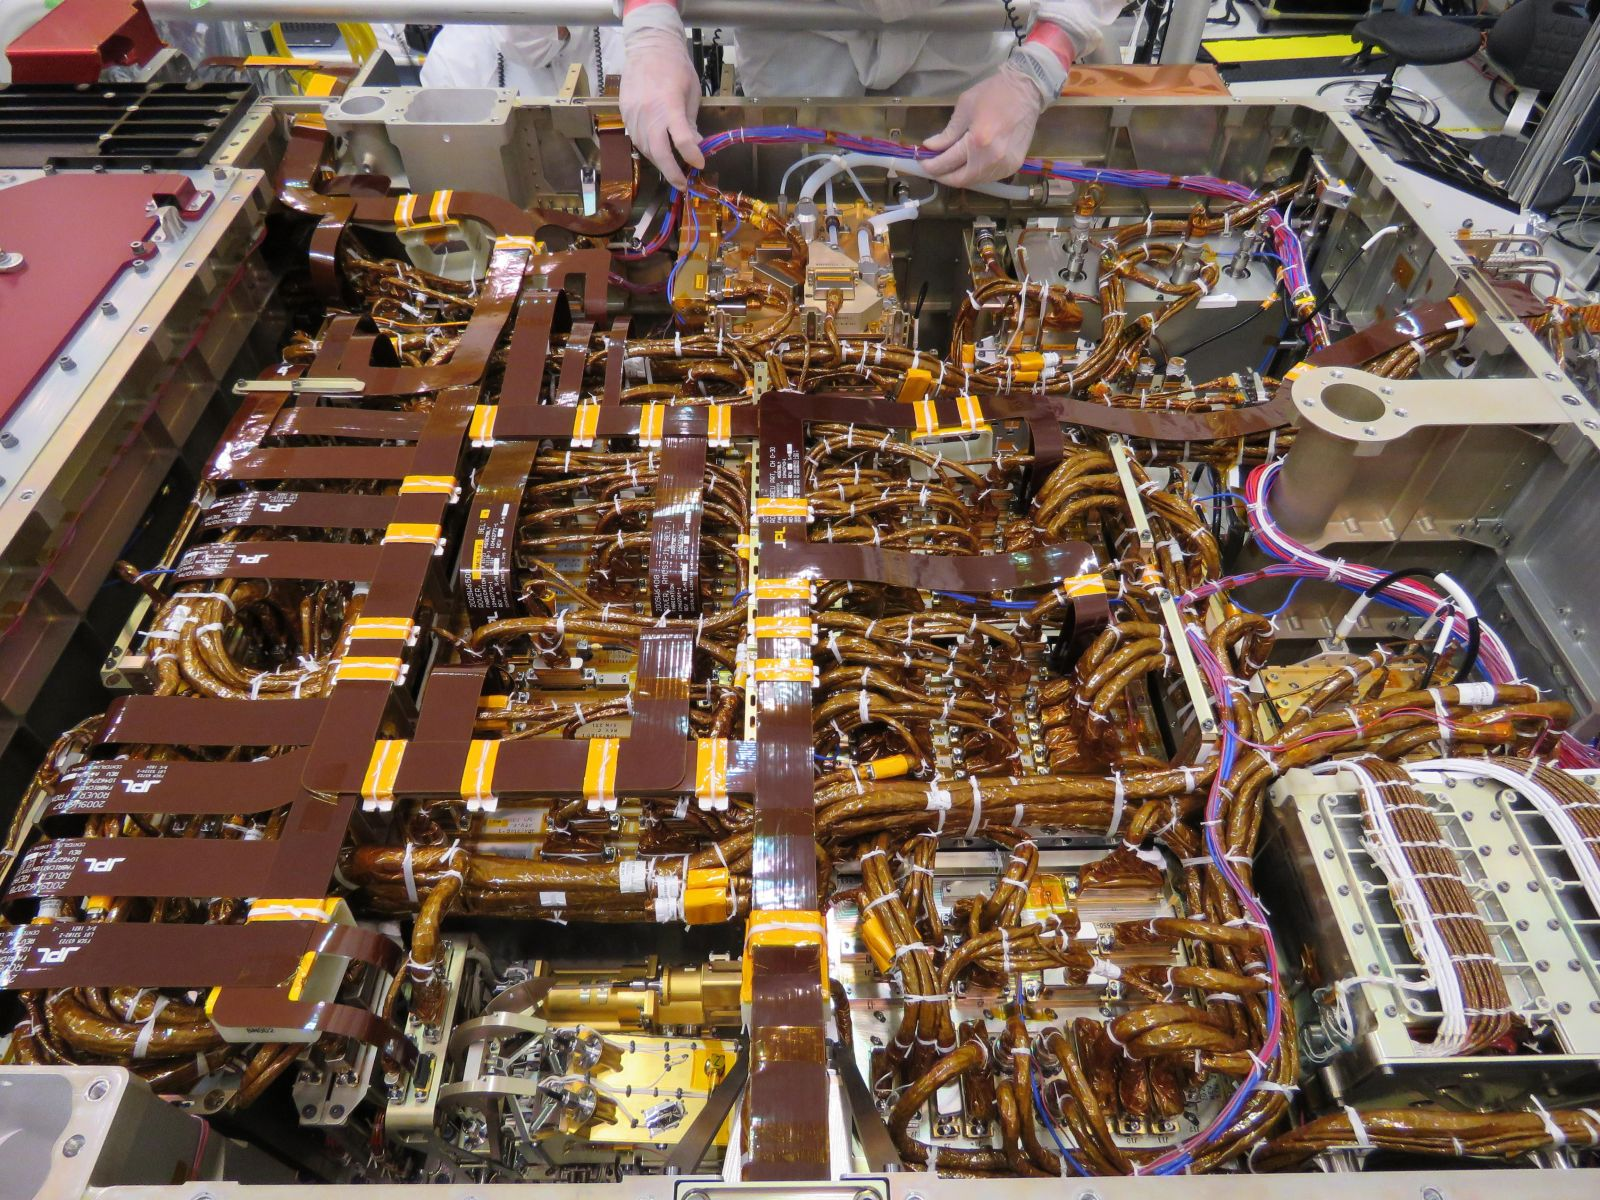 This image shows the interior of the Mars 2020 rover. It was taken on June 1, 2019, during its construction in NASA's Jet Propulsion Laboratory's Spacecraft Assembly Facility's High Bay 1: Photo Credit: NASA/JPL-Caltech